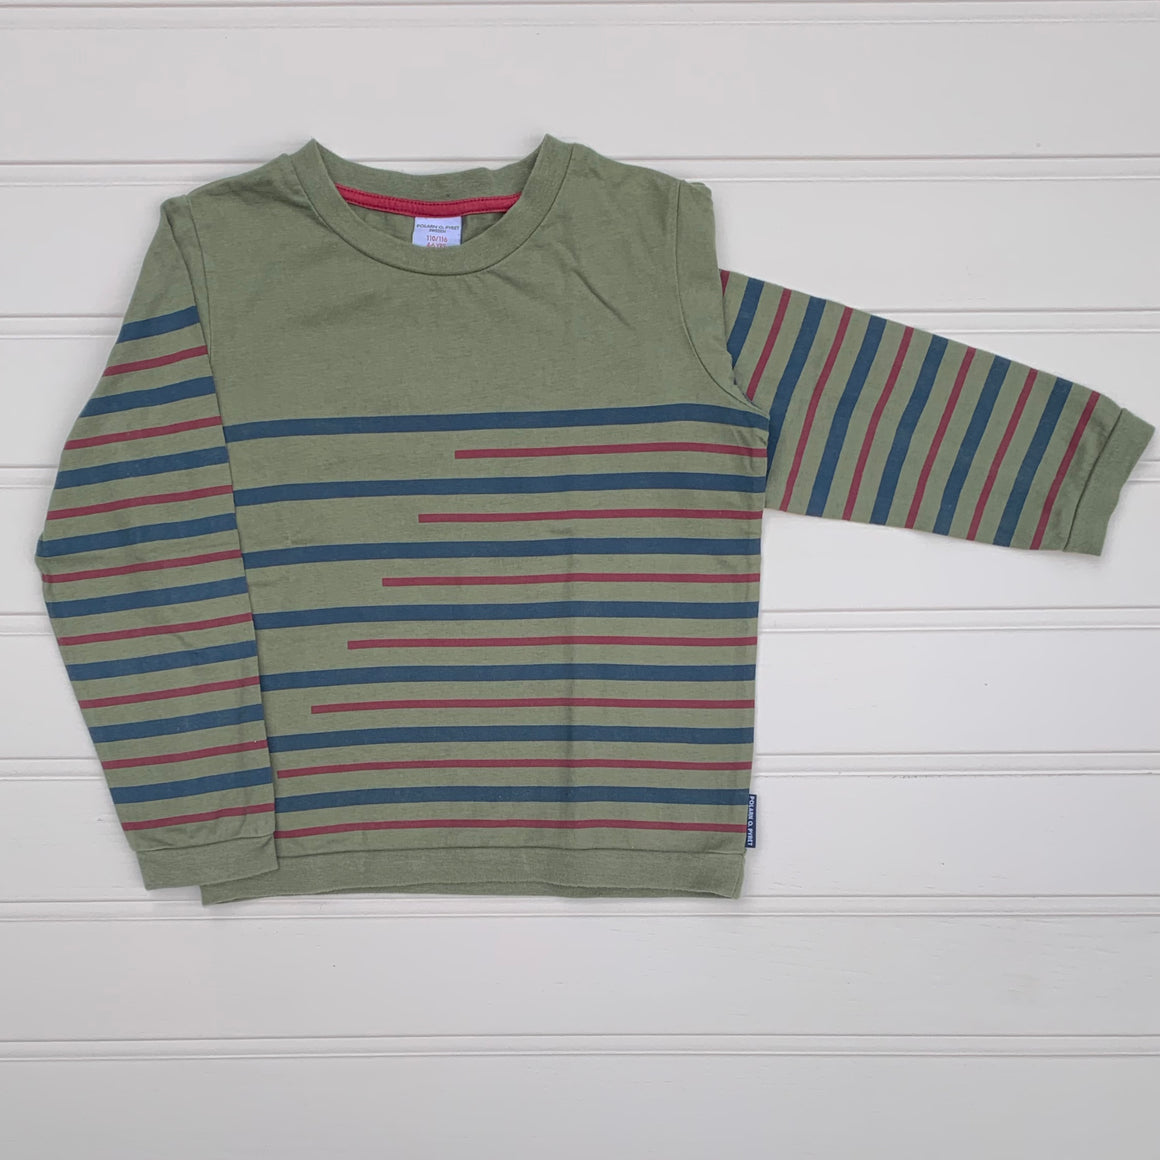 Hardly Worn Polarn O Pyret long-sleeve top size 4-6 years